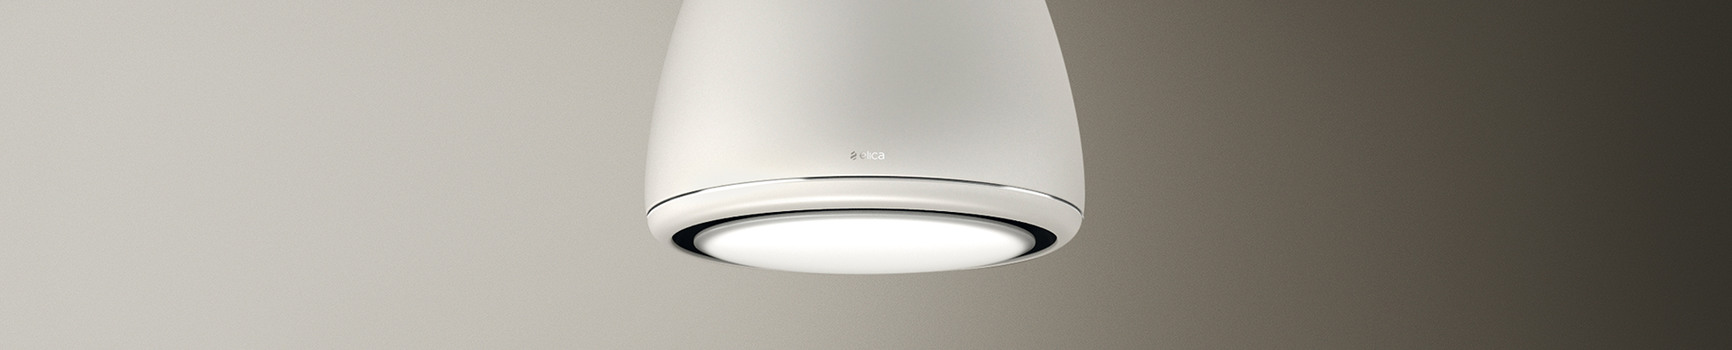 Hoods that light or lamps that extract?